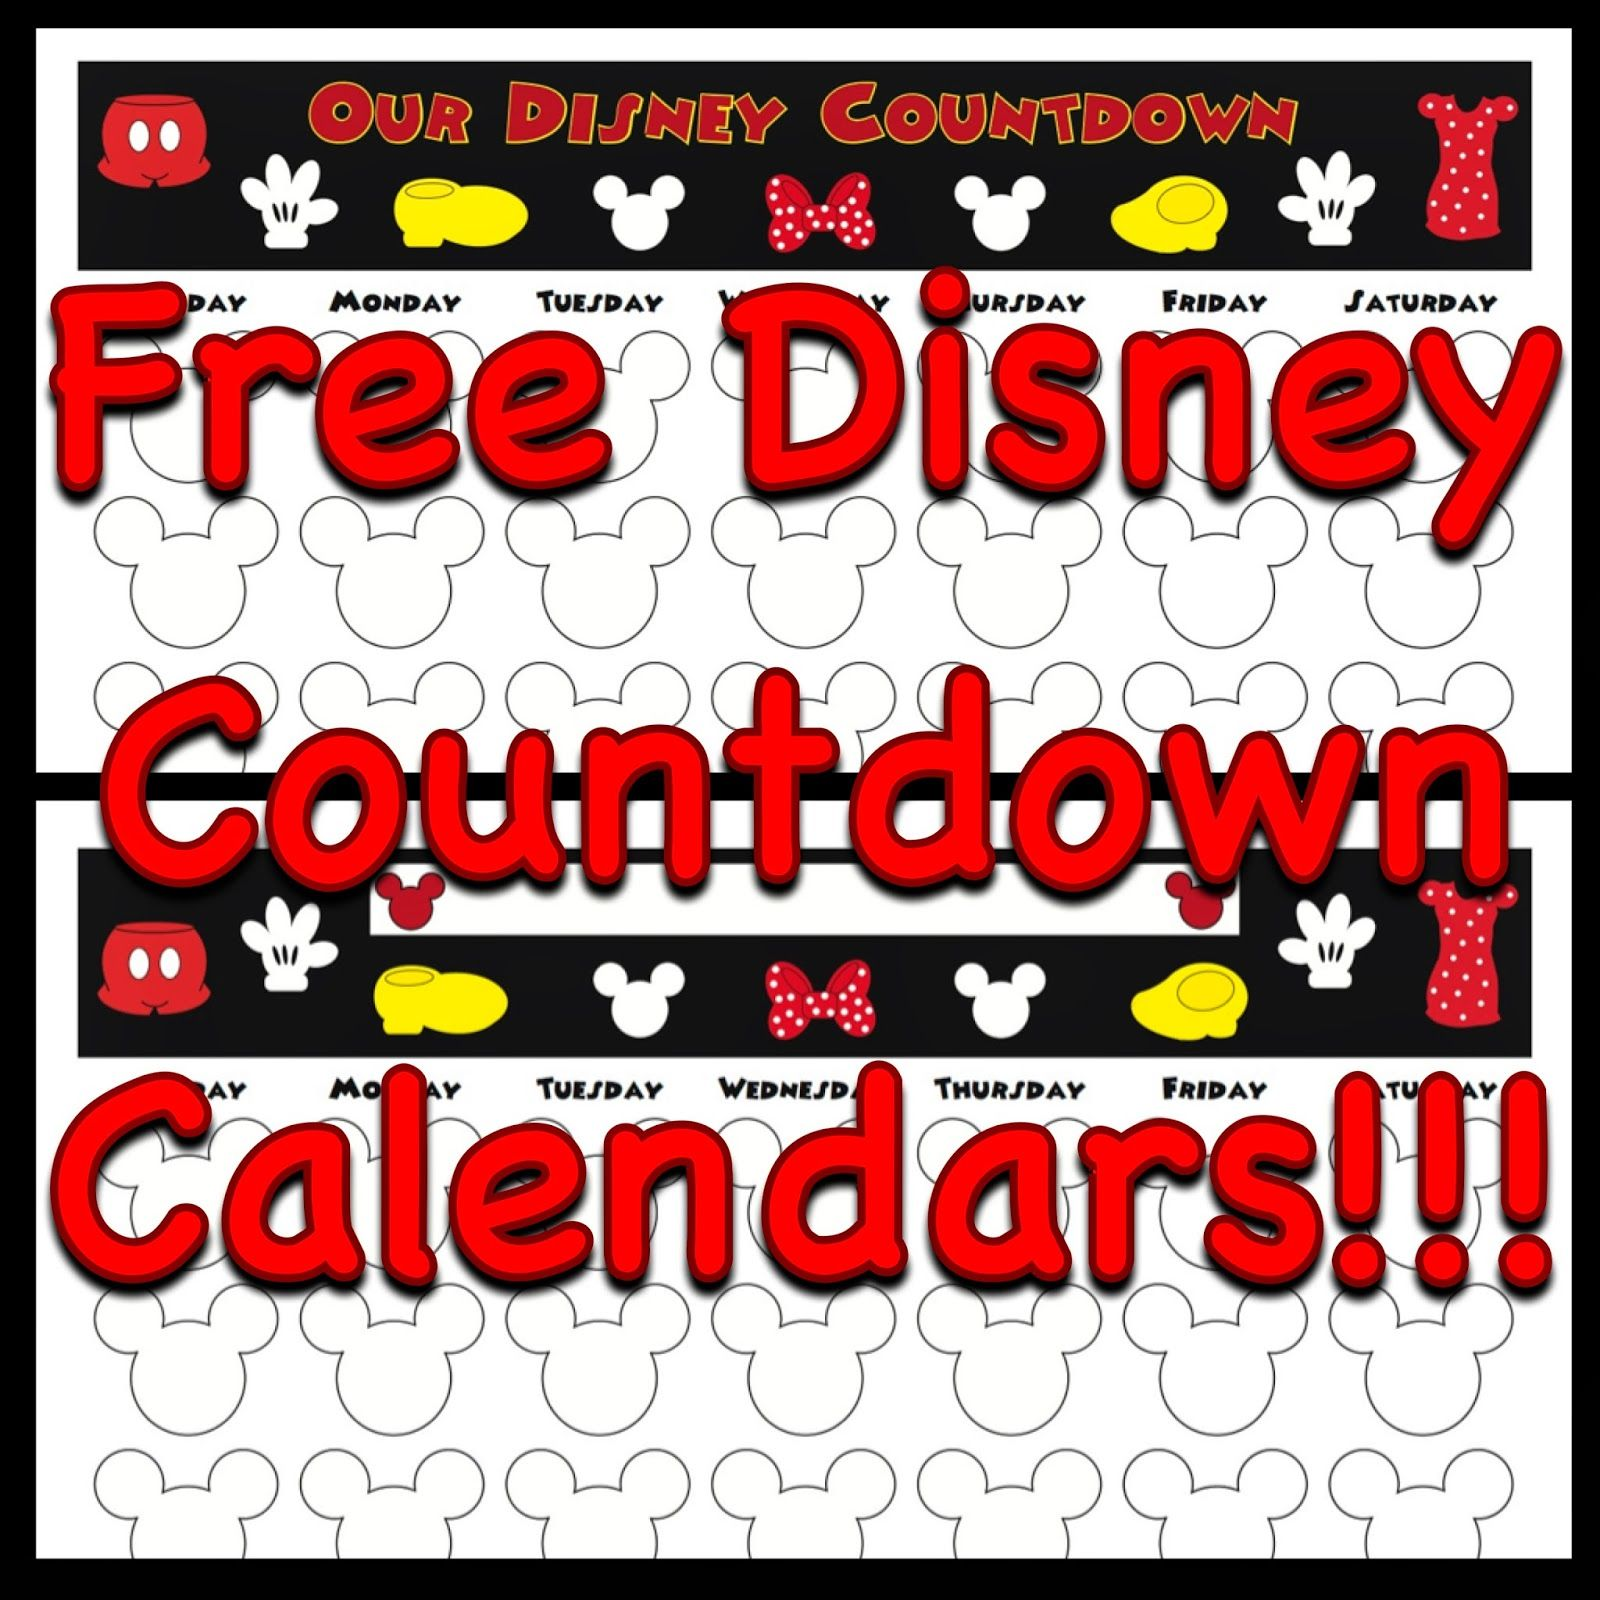 Calendar Countdown Wallpaper : Free printable countdown calendars to use for your next